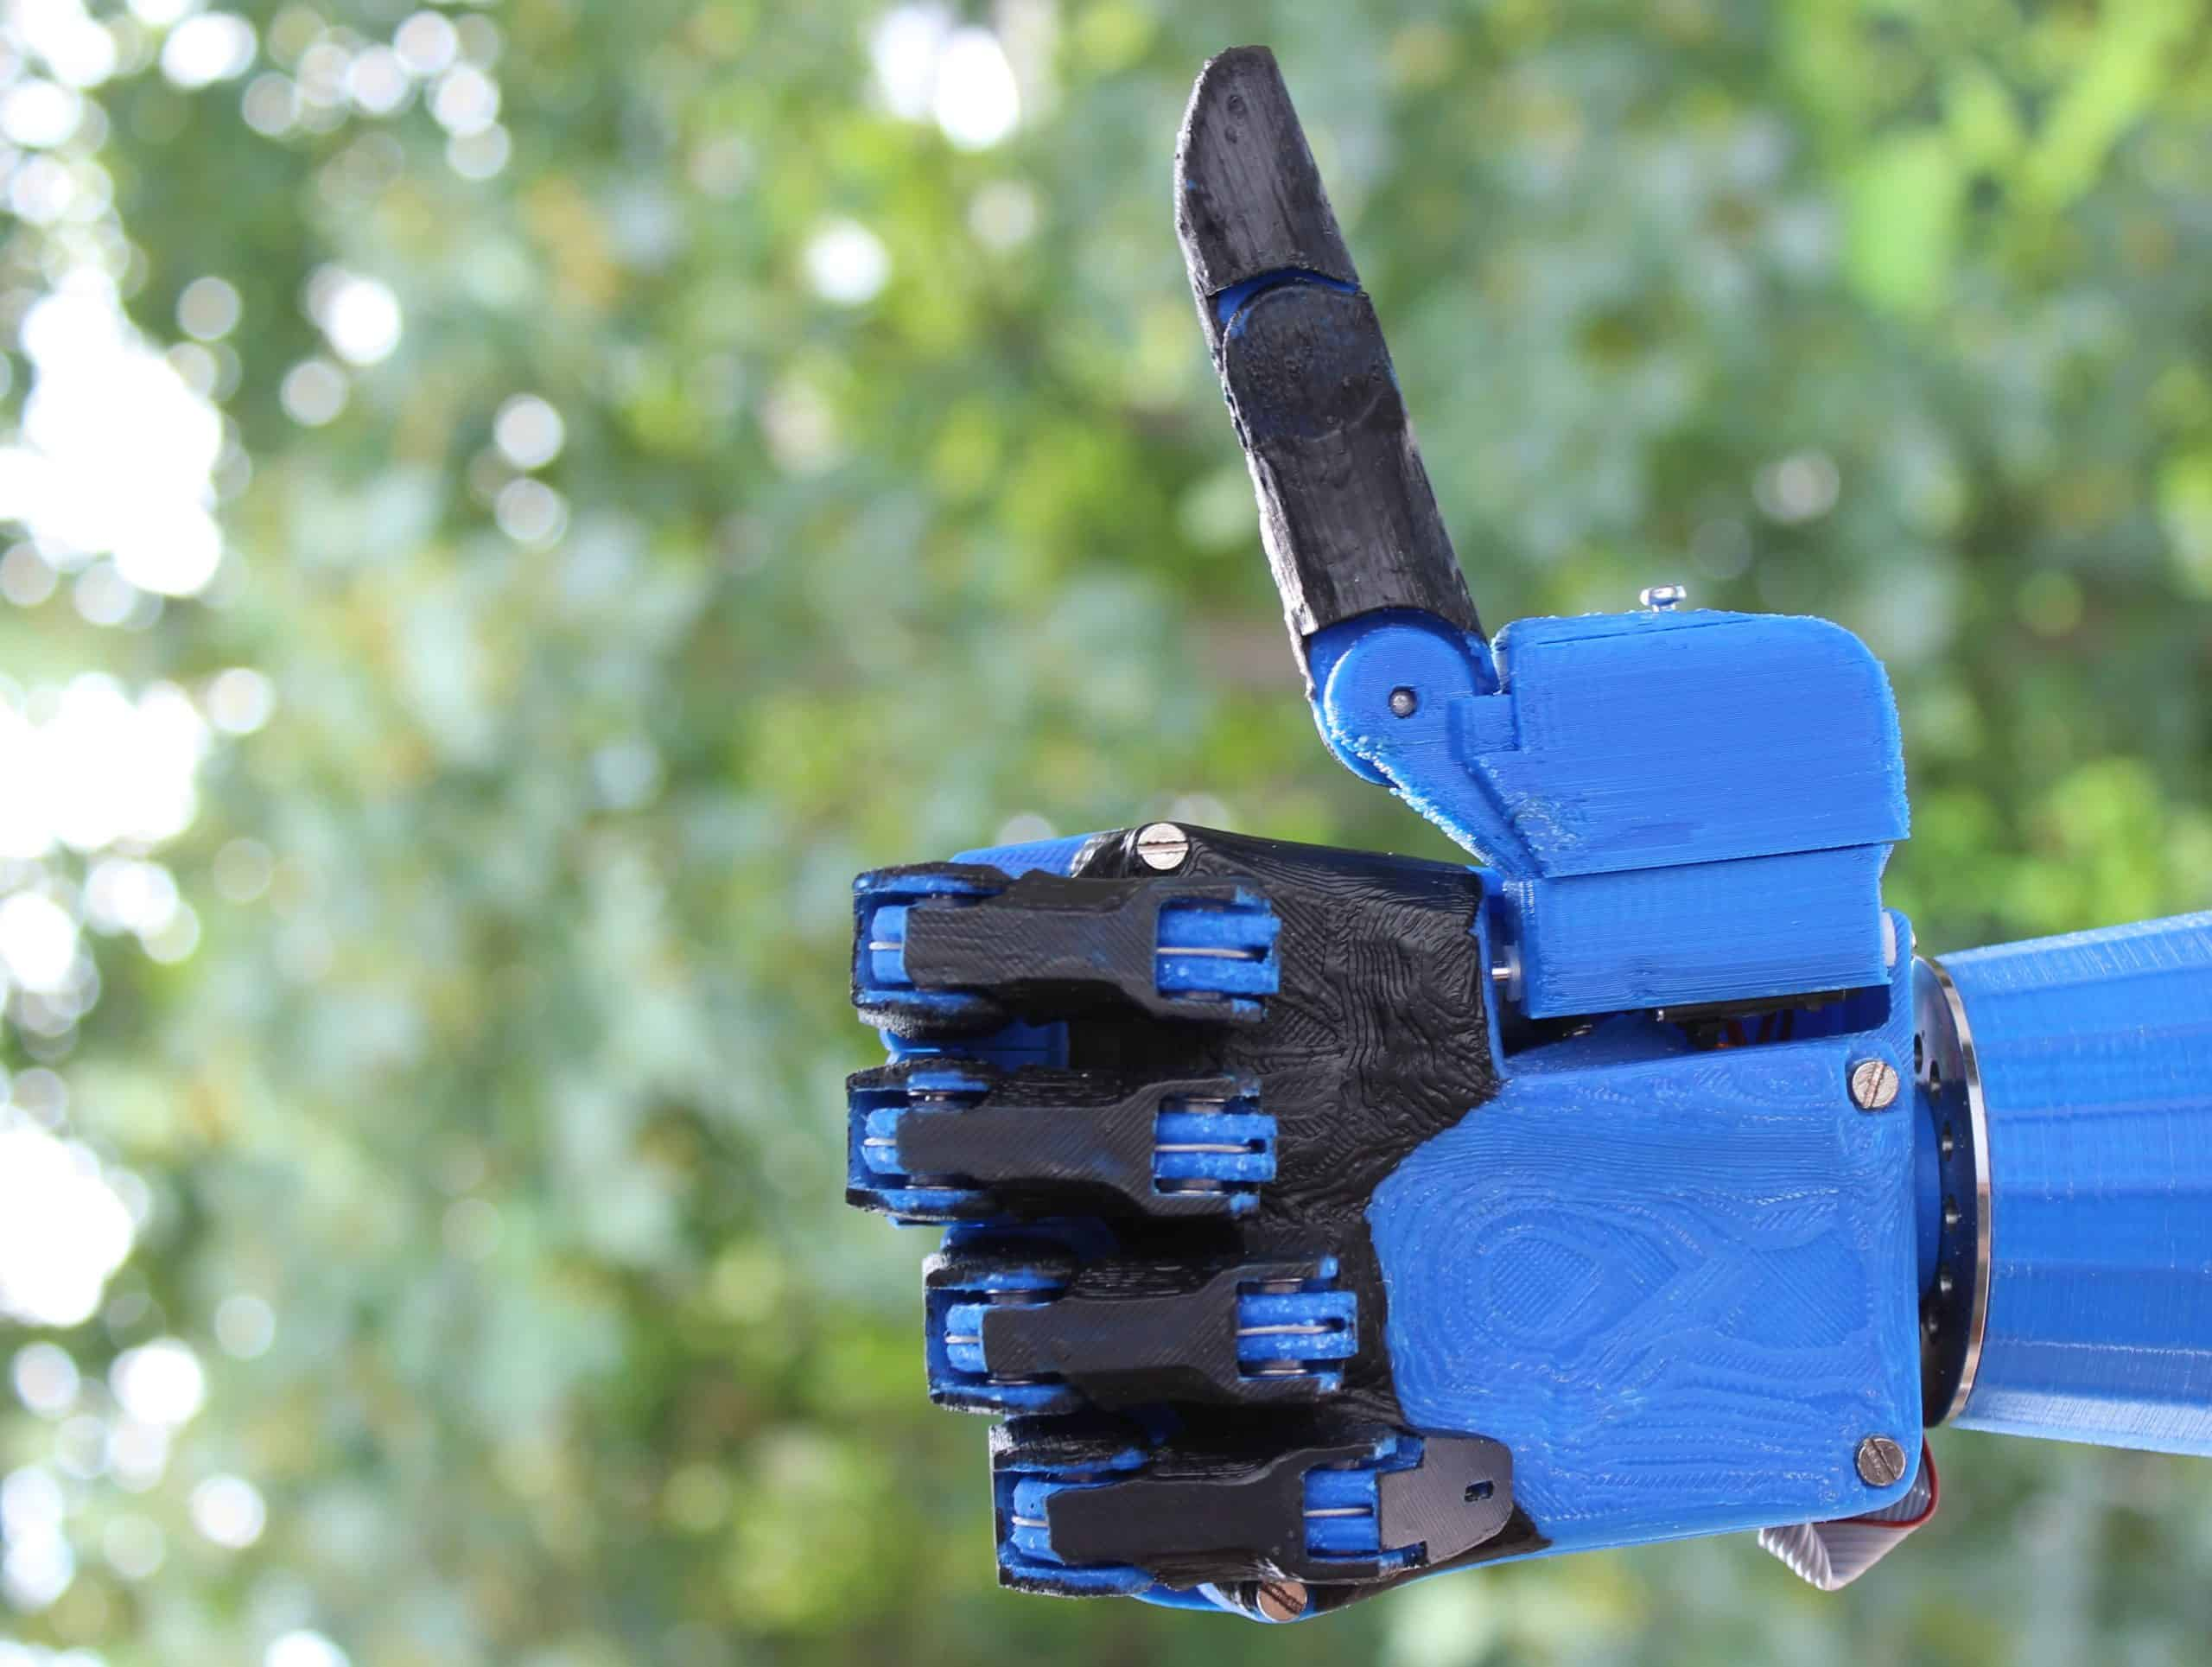 This 3D-Printed Prosthetic Hand is Robotically Cool 6